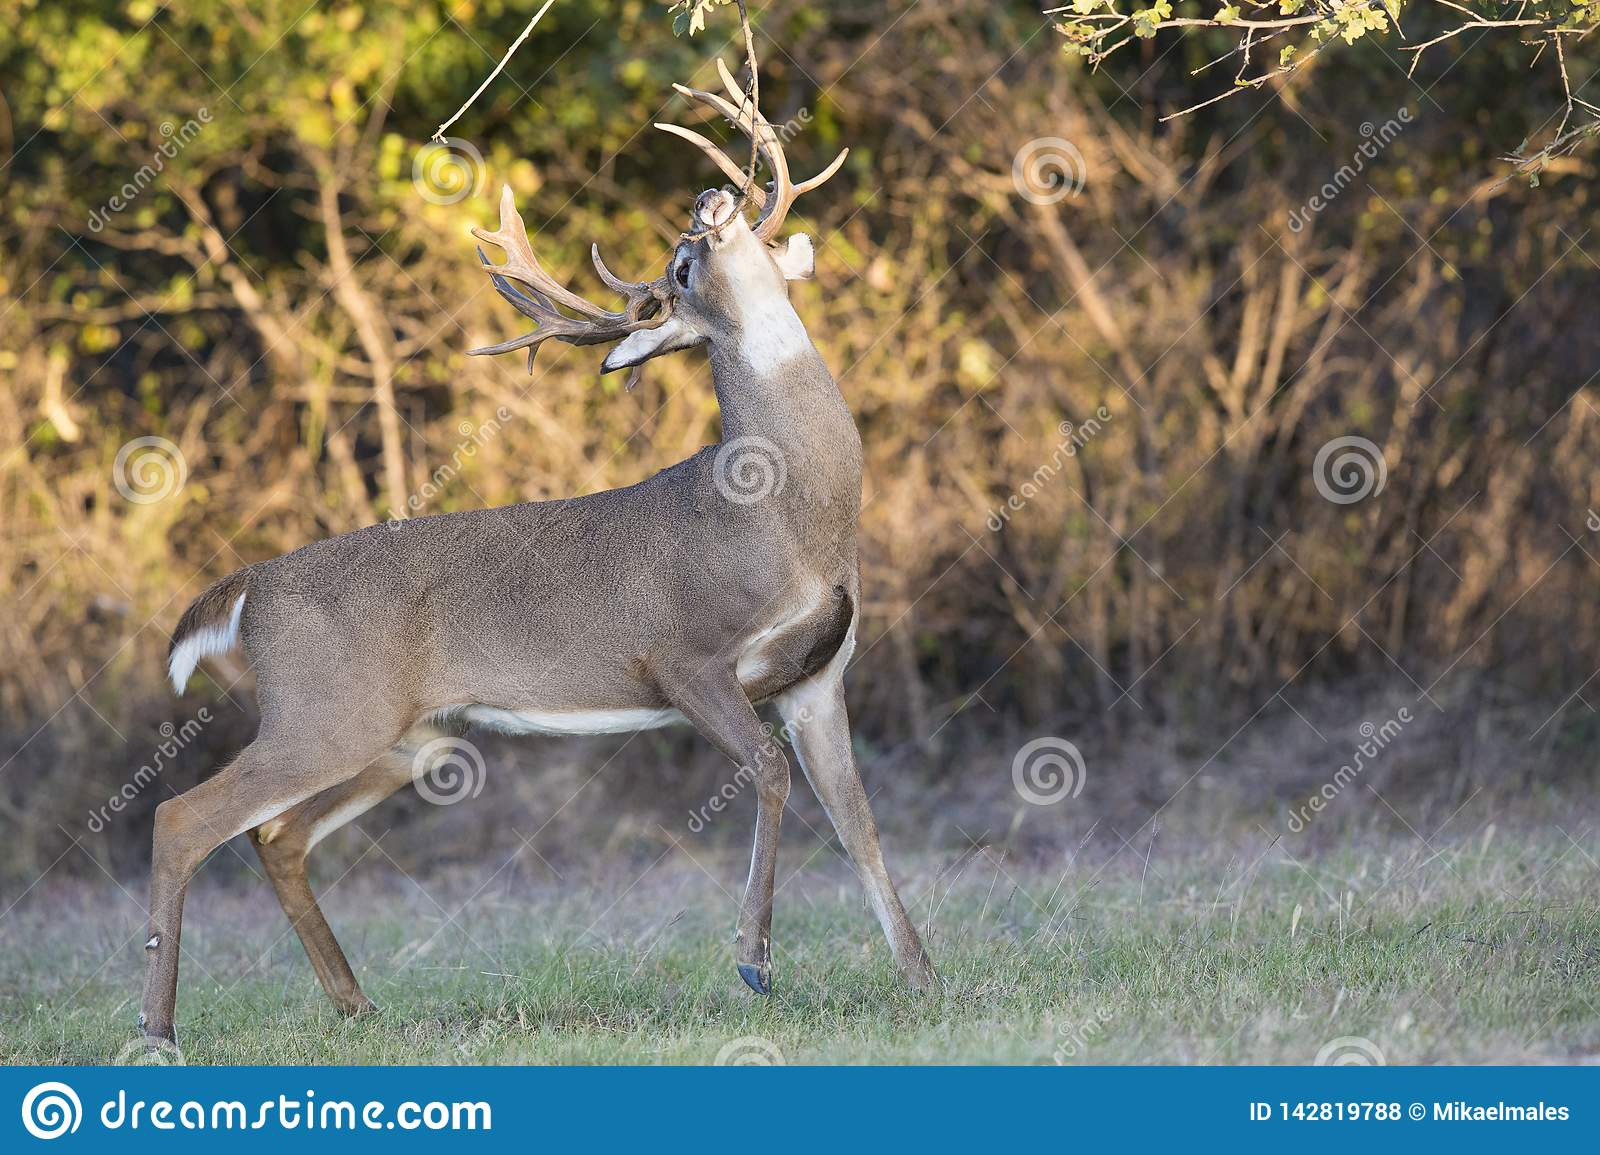 Massive non typical whitetail buck making rub on tree branch during the rut while lip curling